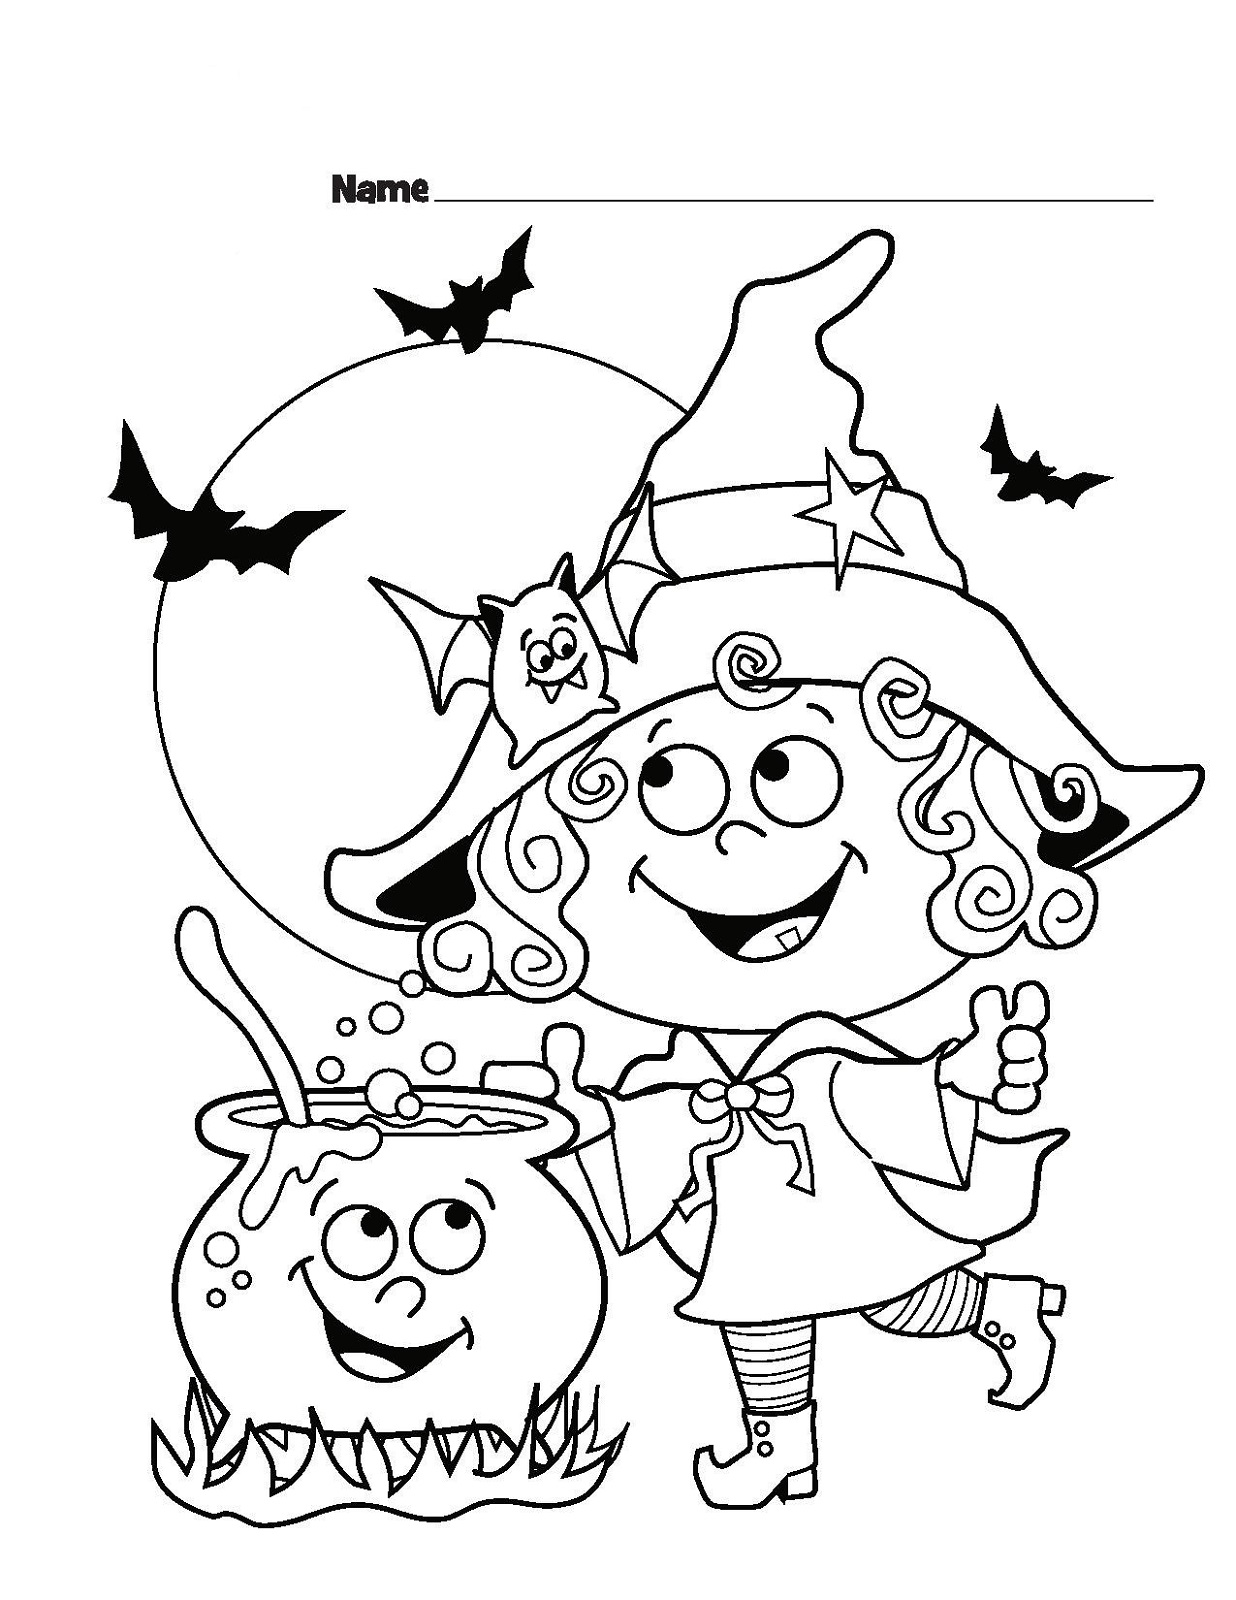 Coloring Sheets for Kids Halloween